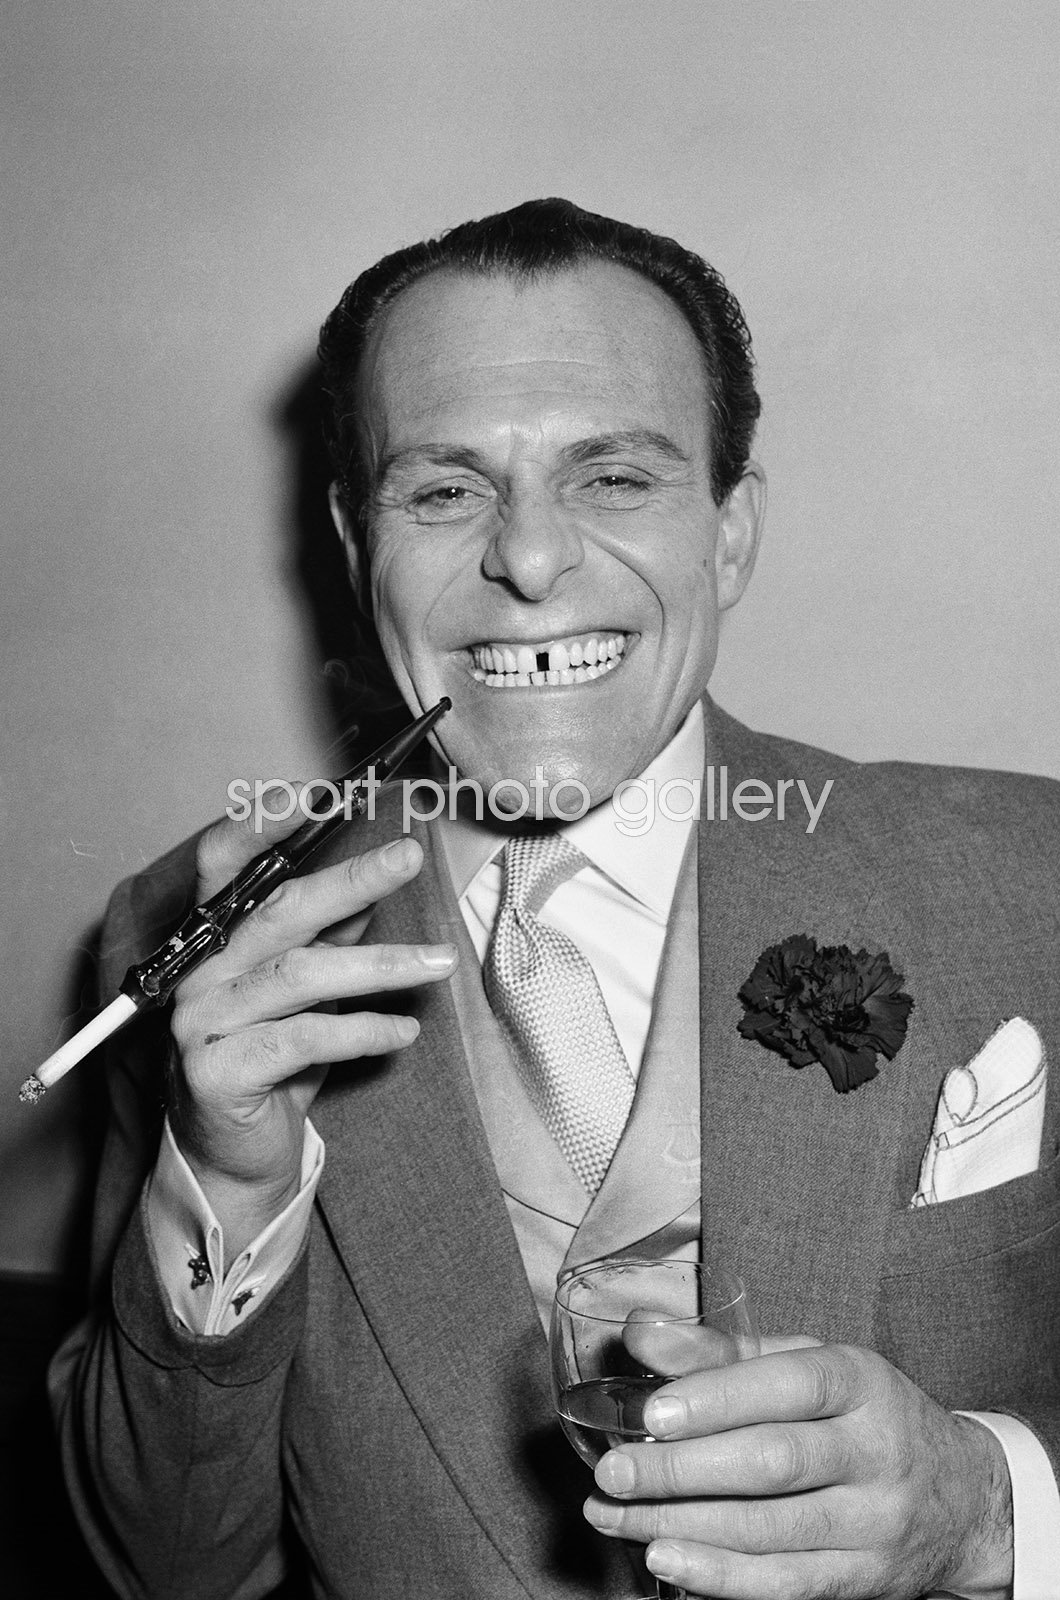 Terry Thomas English & Comedian with Cigarette Holder